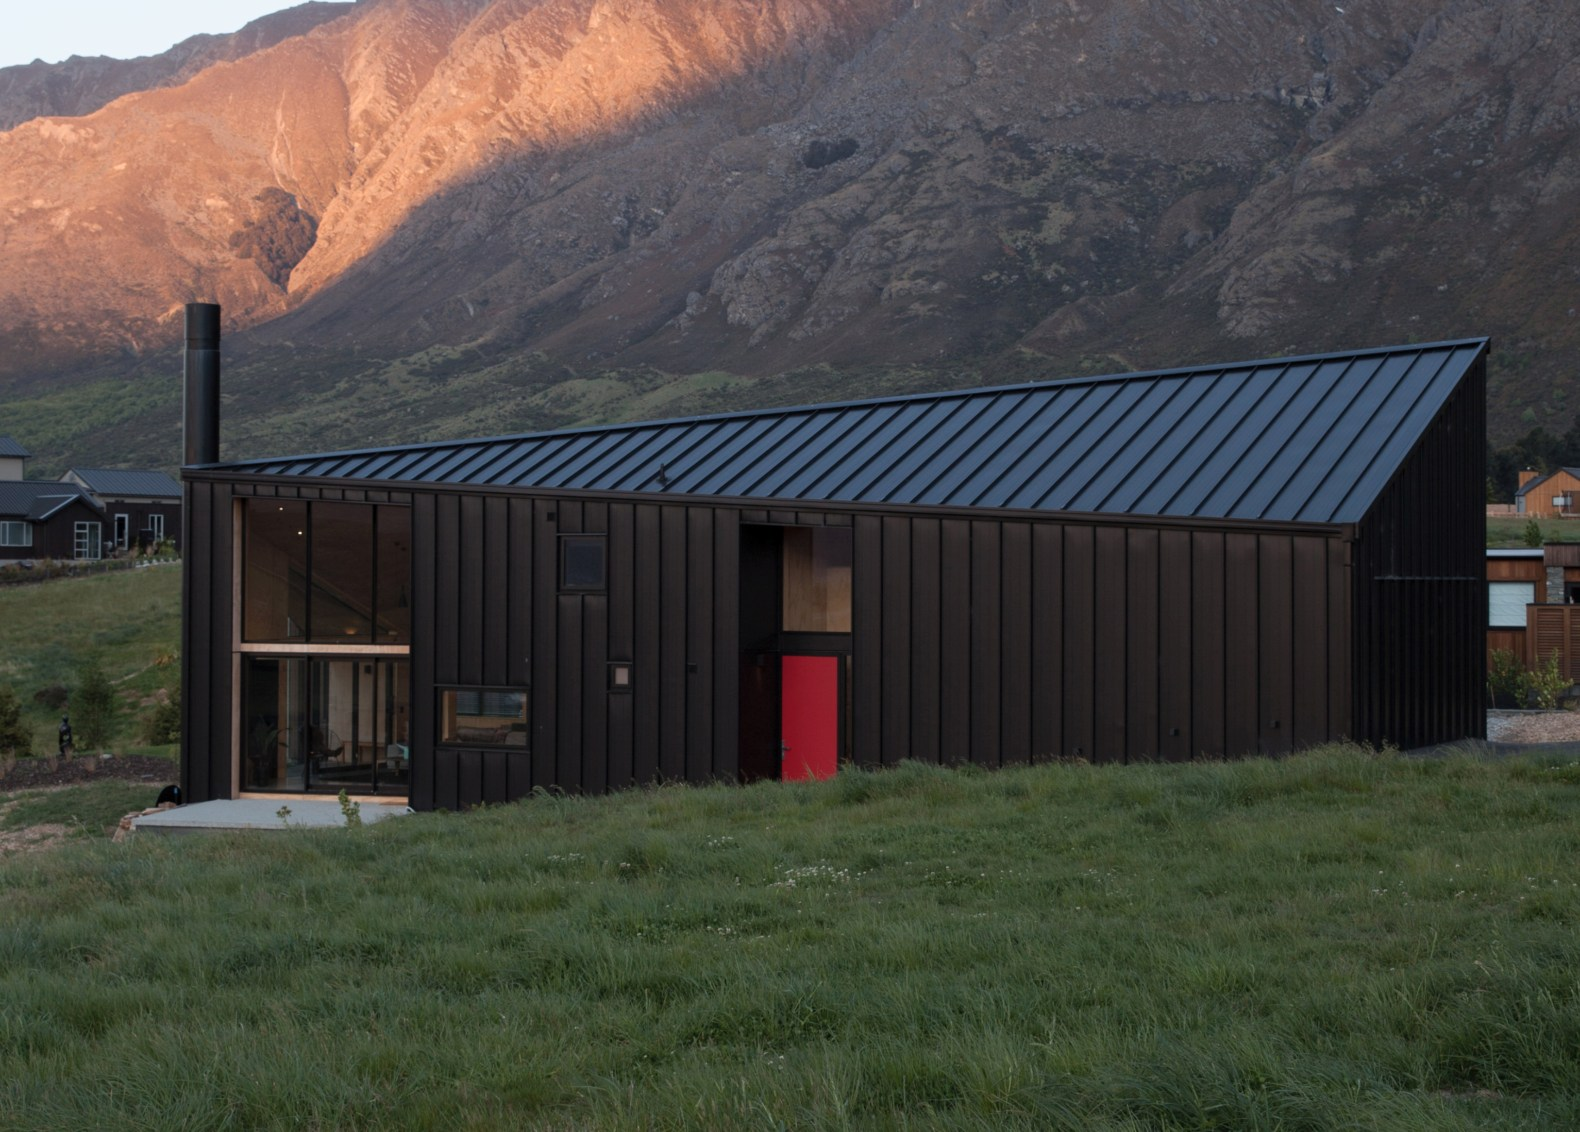 Find your zen in this tiny cabin tucked into New Zealand's idyllic landscape